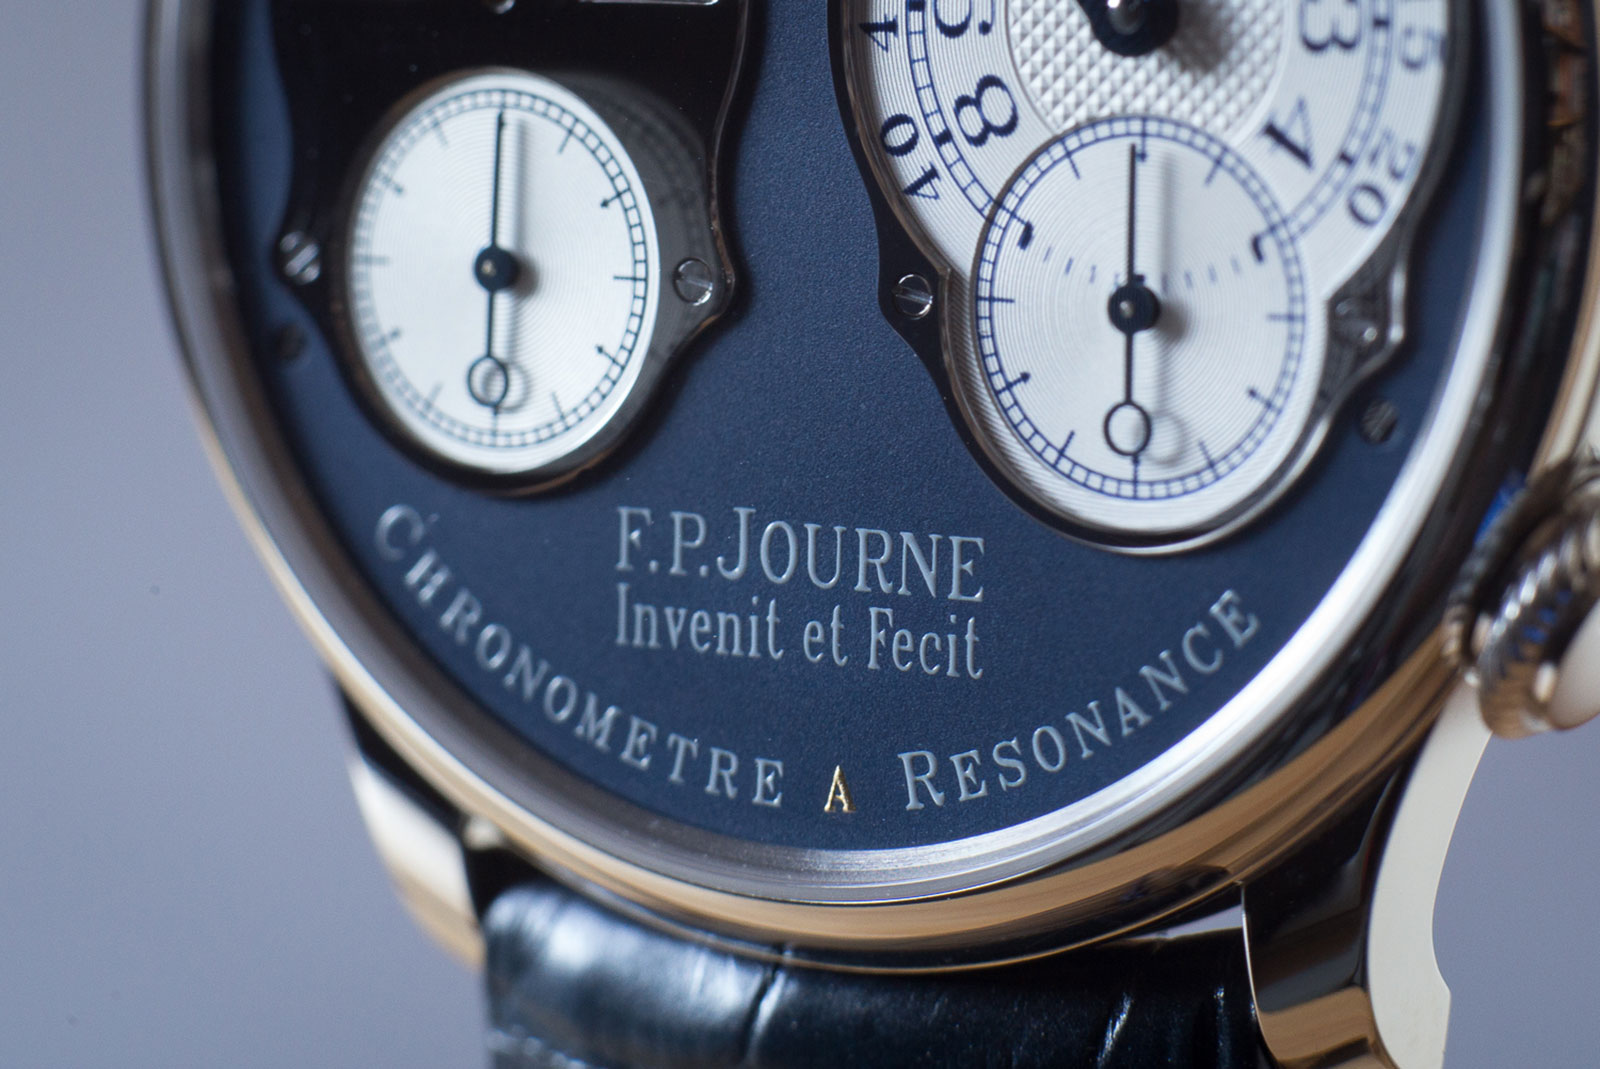 FP Journe Resonance The Armoury Mark Cho 2